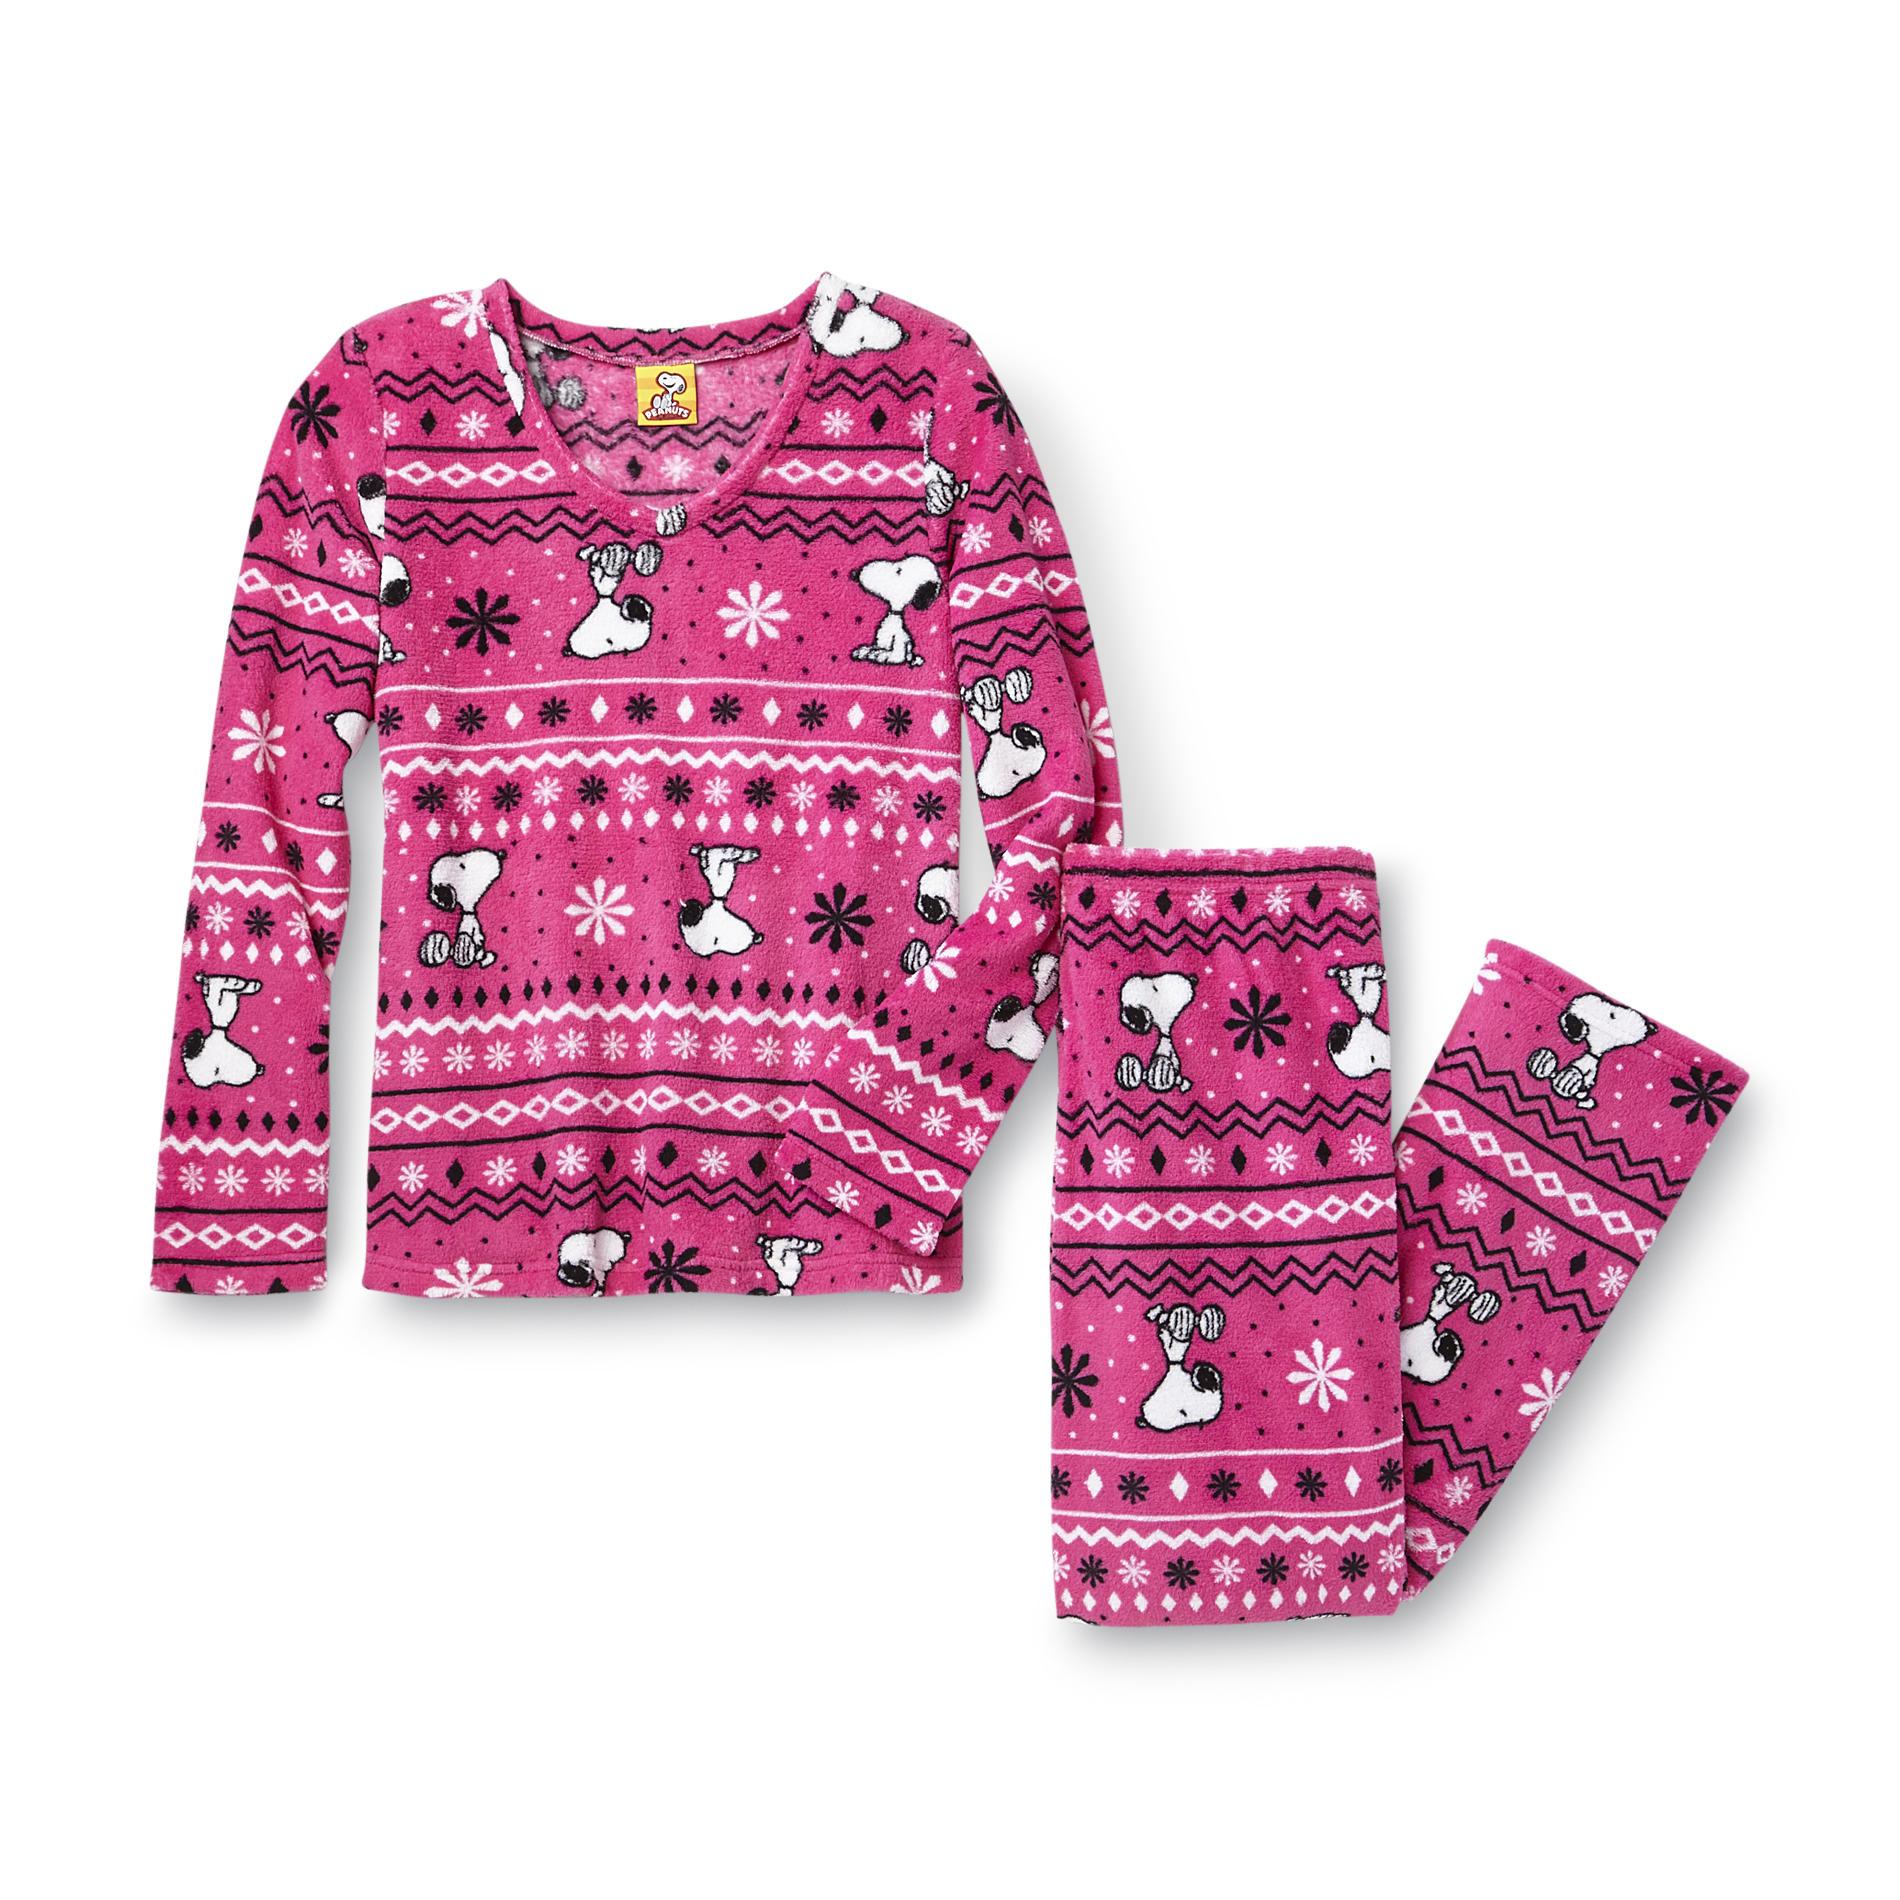 Peanuts Women's Plush Pajama Top & Pants - Snoopy at Kmart.com